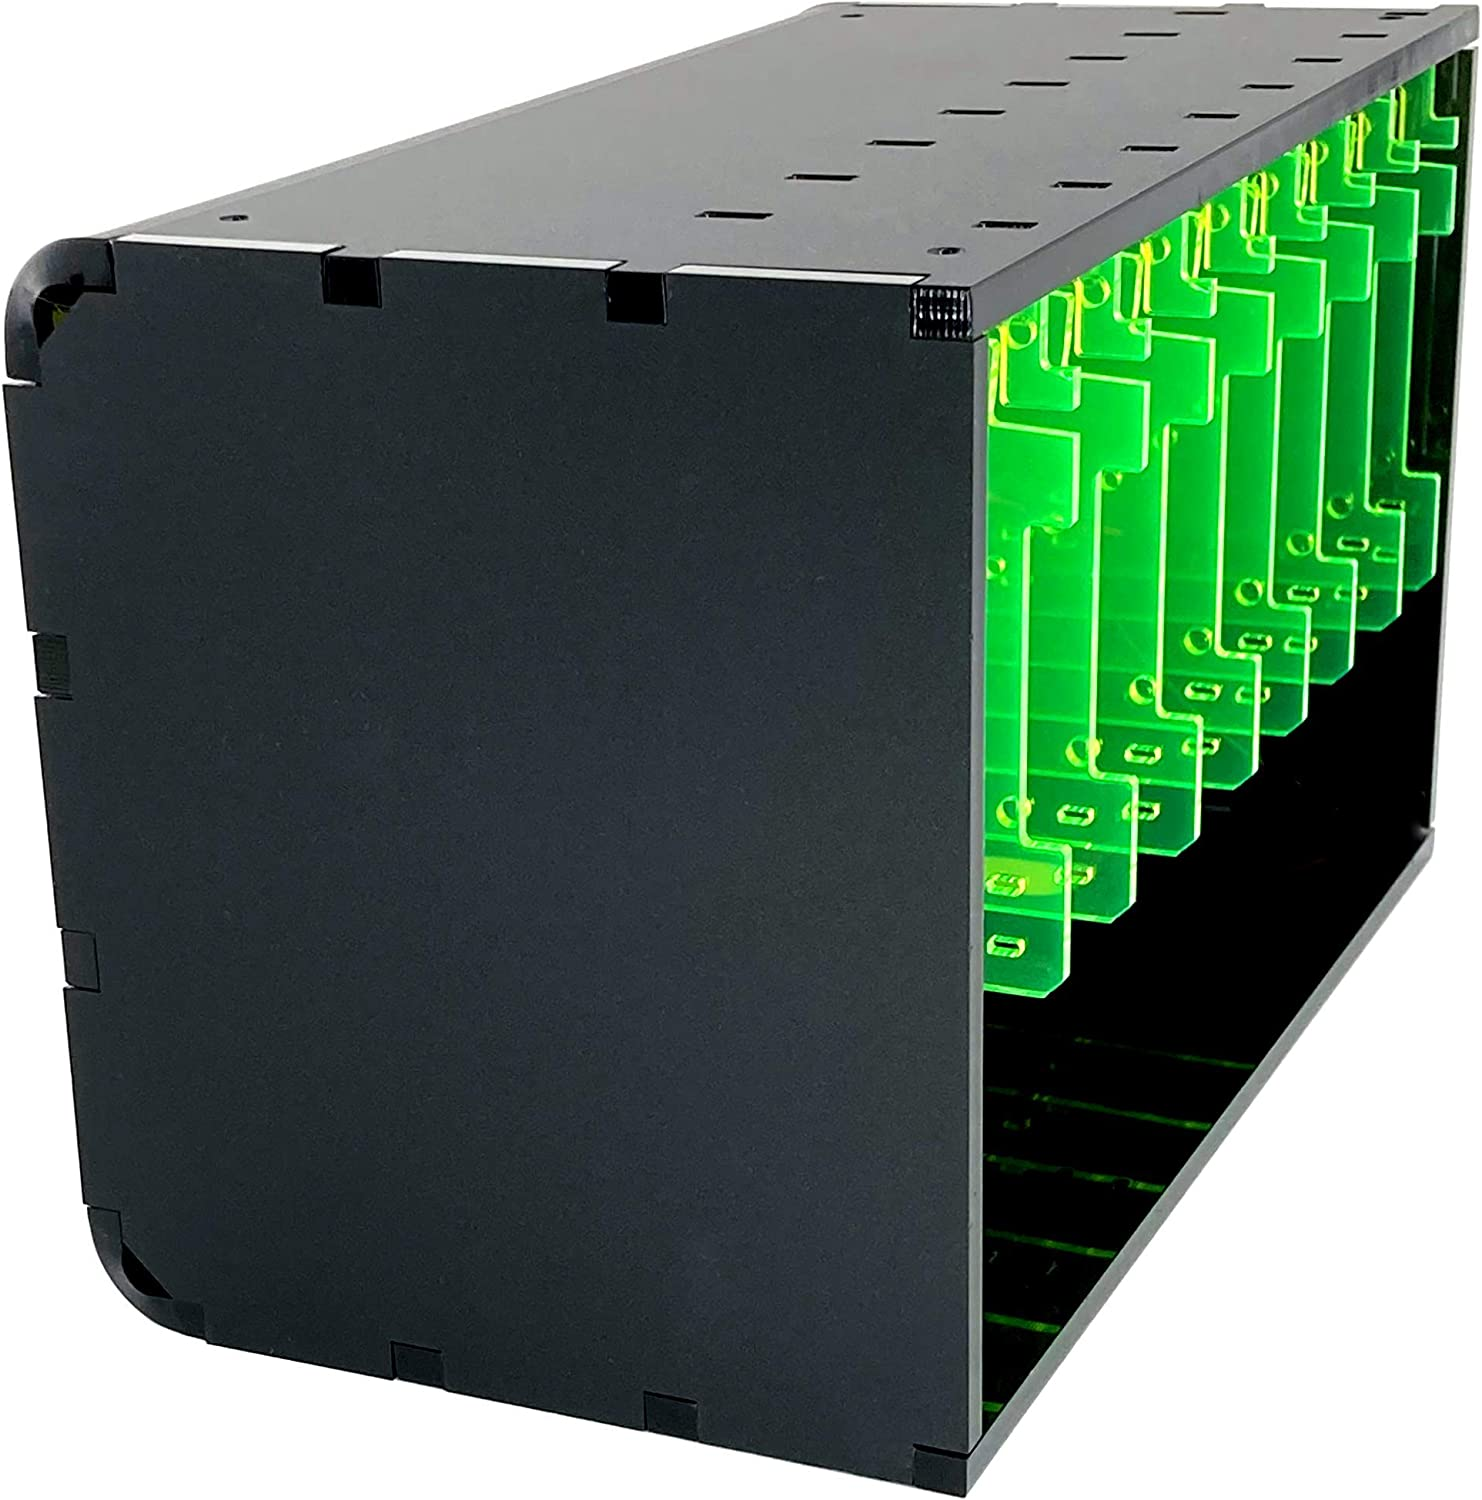 C4Labs Cloudlet CASE: Cluster Case for Raspberry Pi and Other Single Board Computers-Black Lime